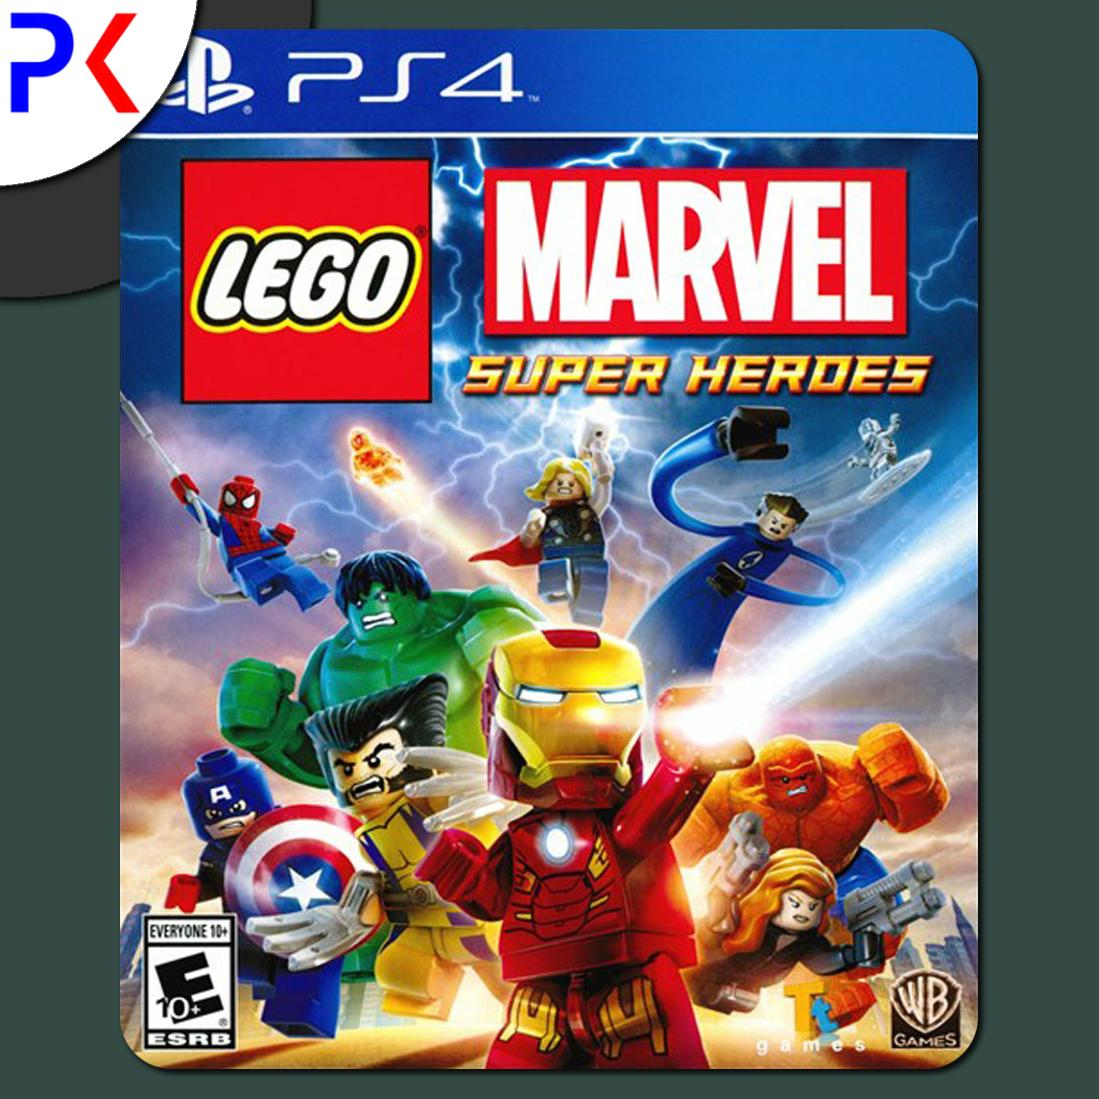 Ps4 Lego Marvel Super Heroes R2 Reviews